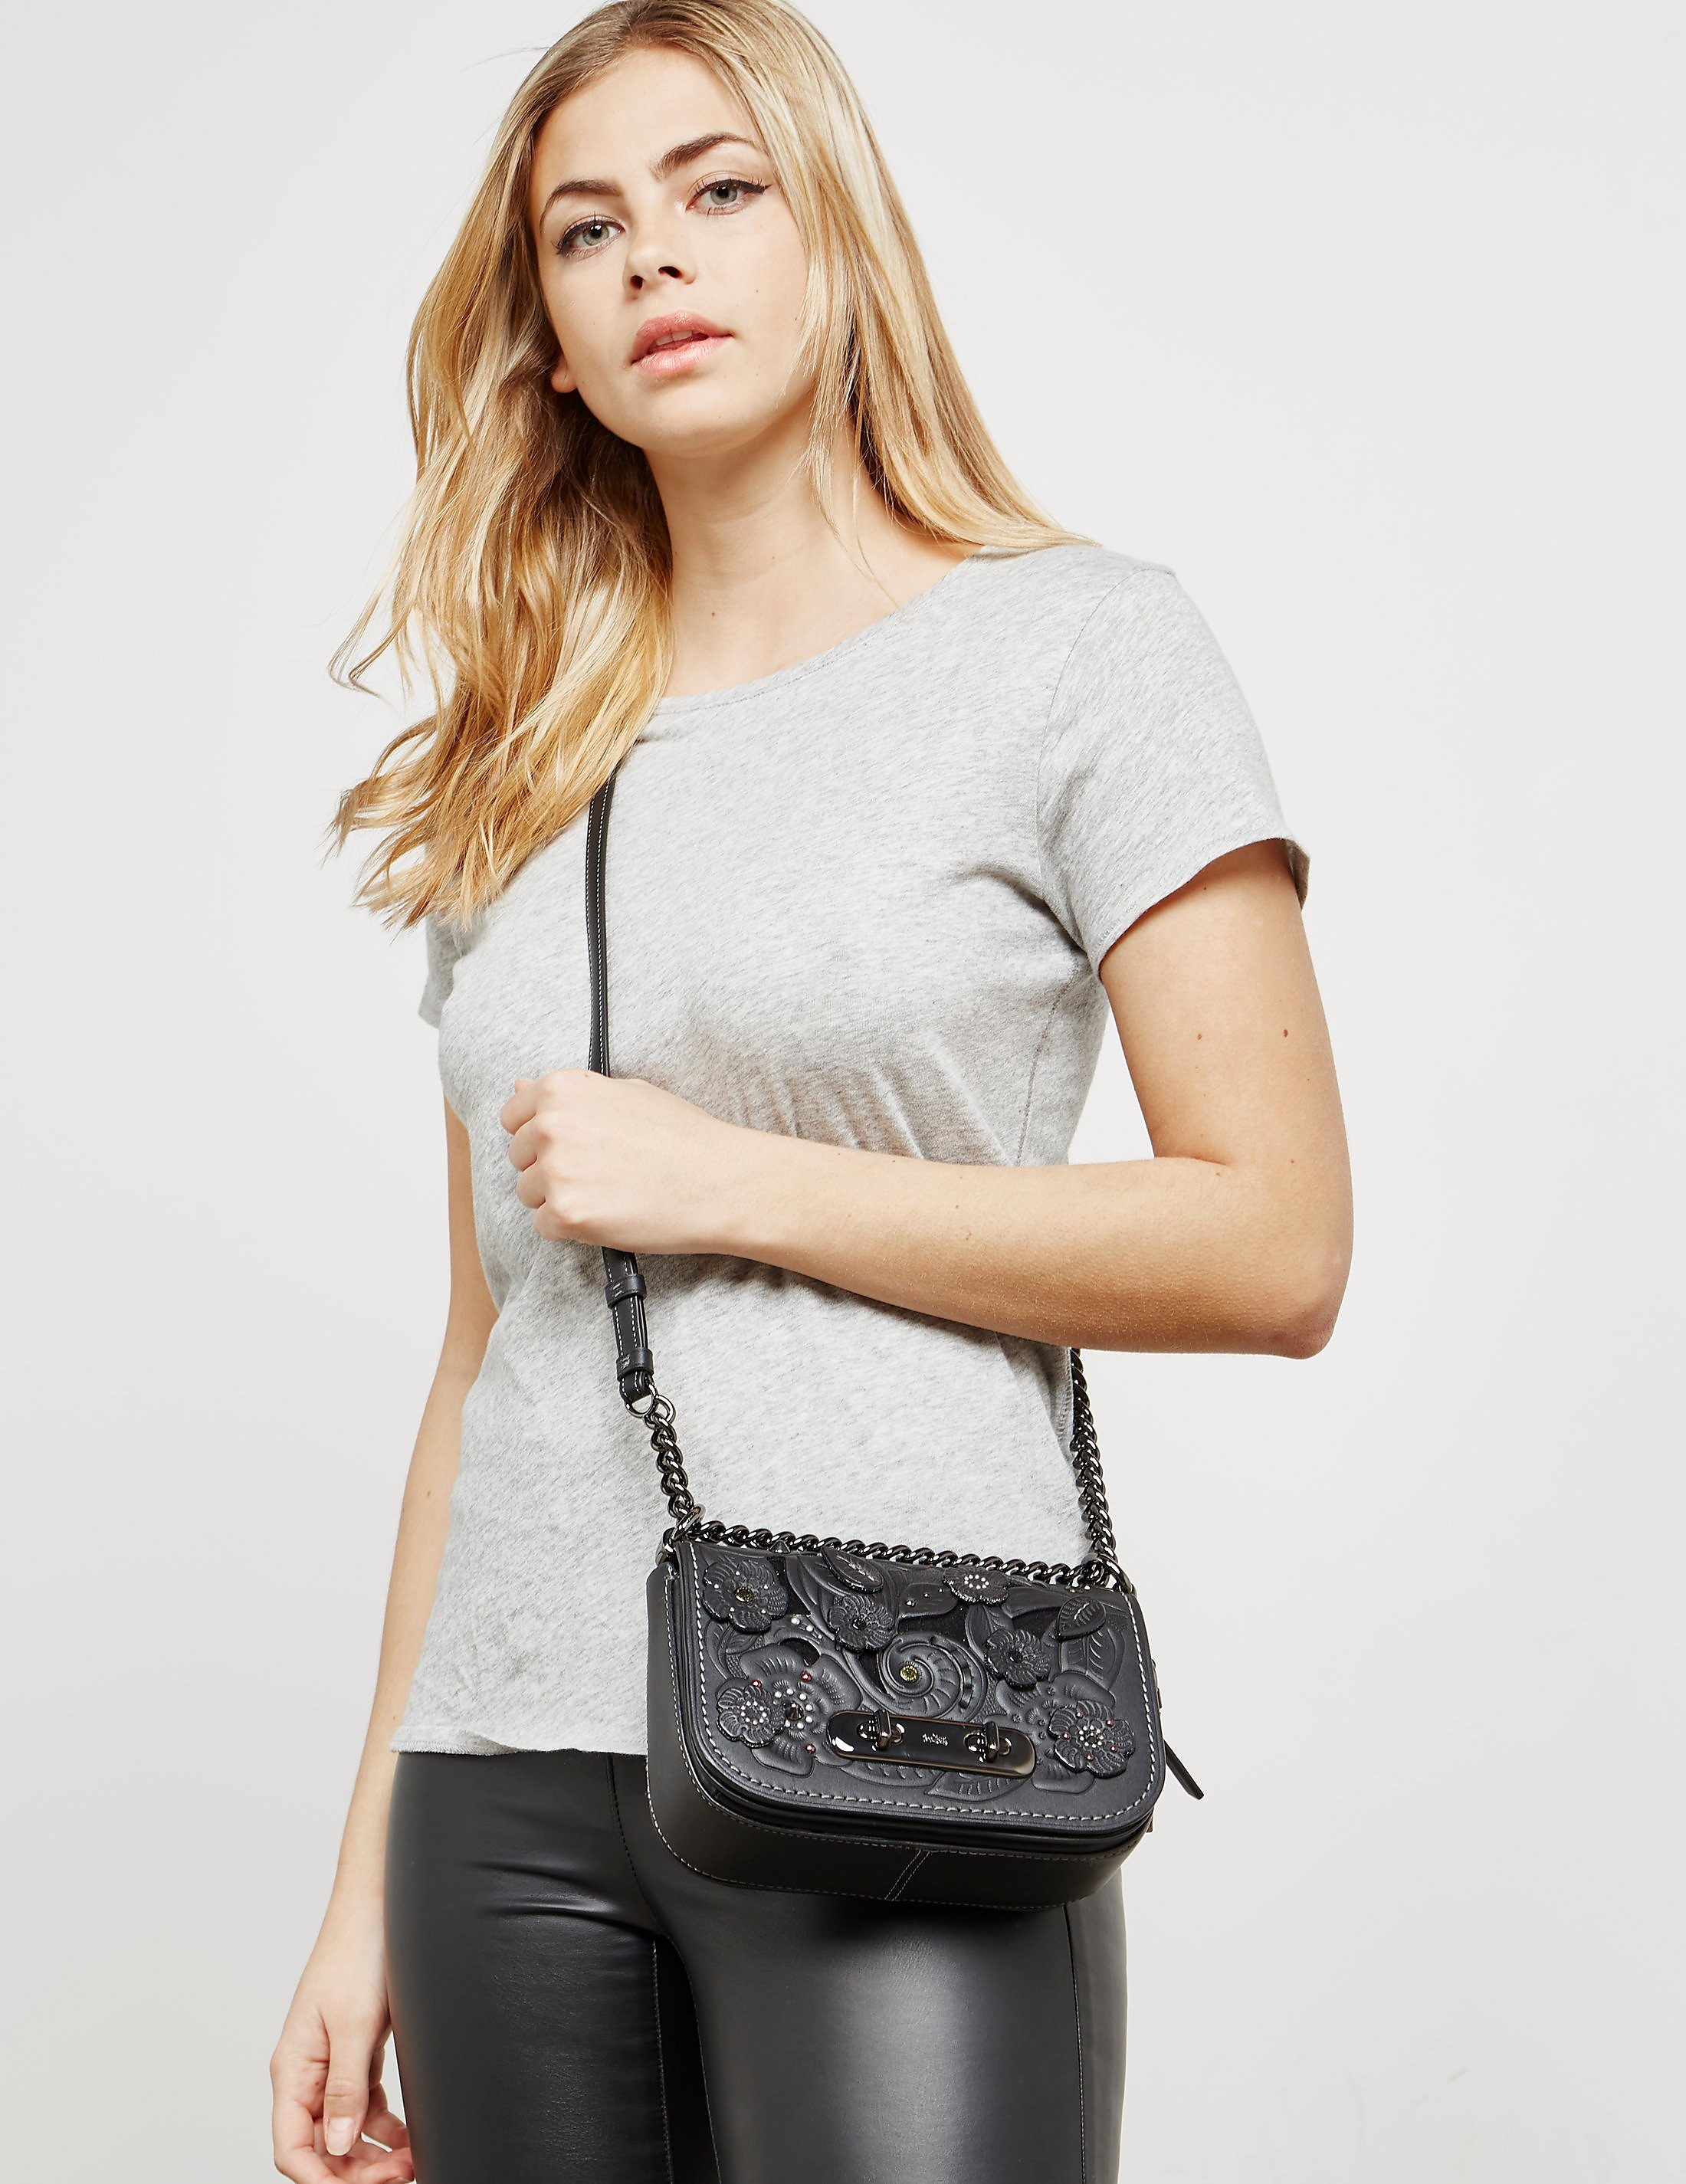 COACH Swagger Shoulder Bag